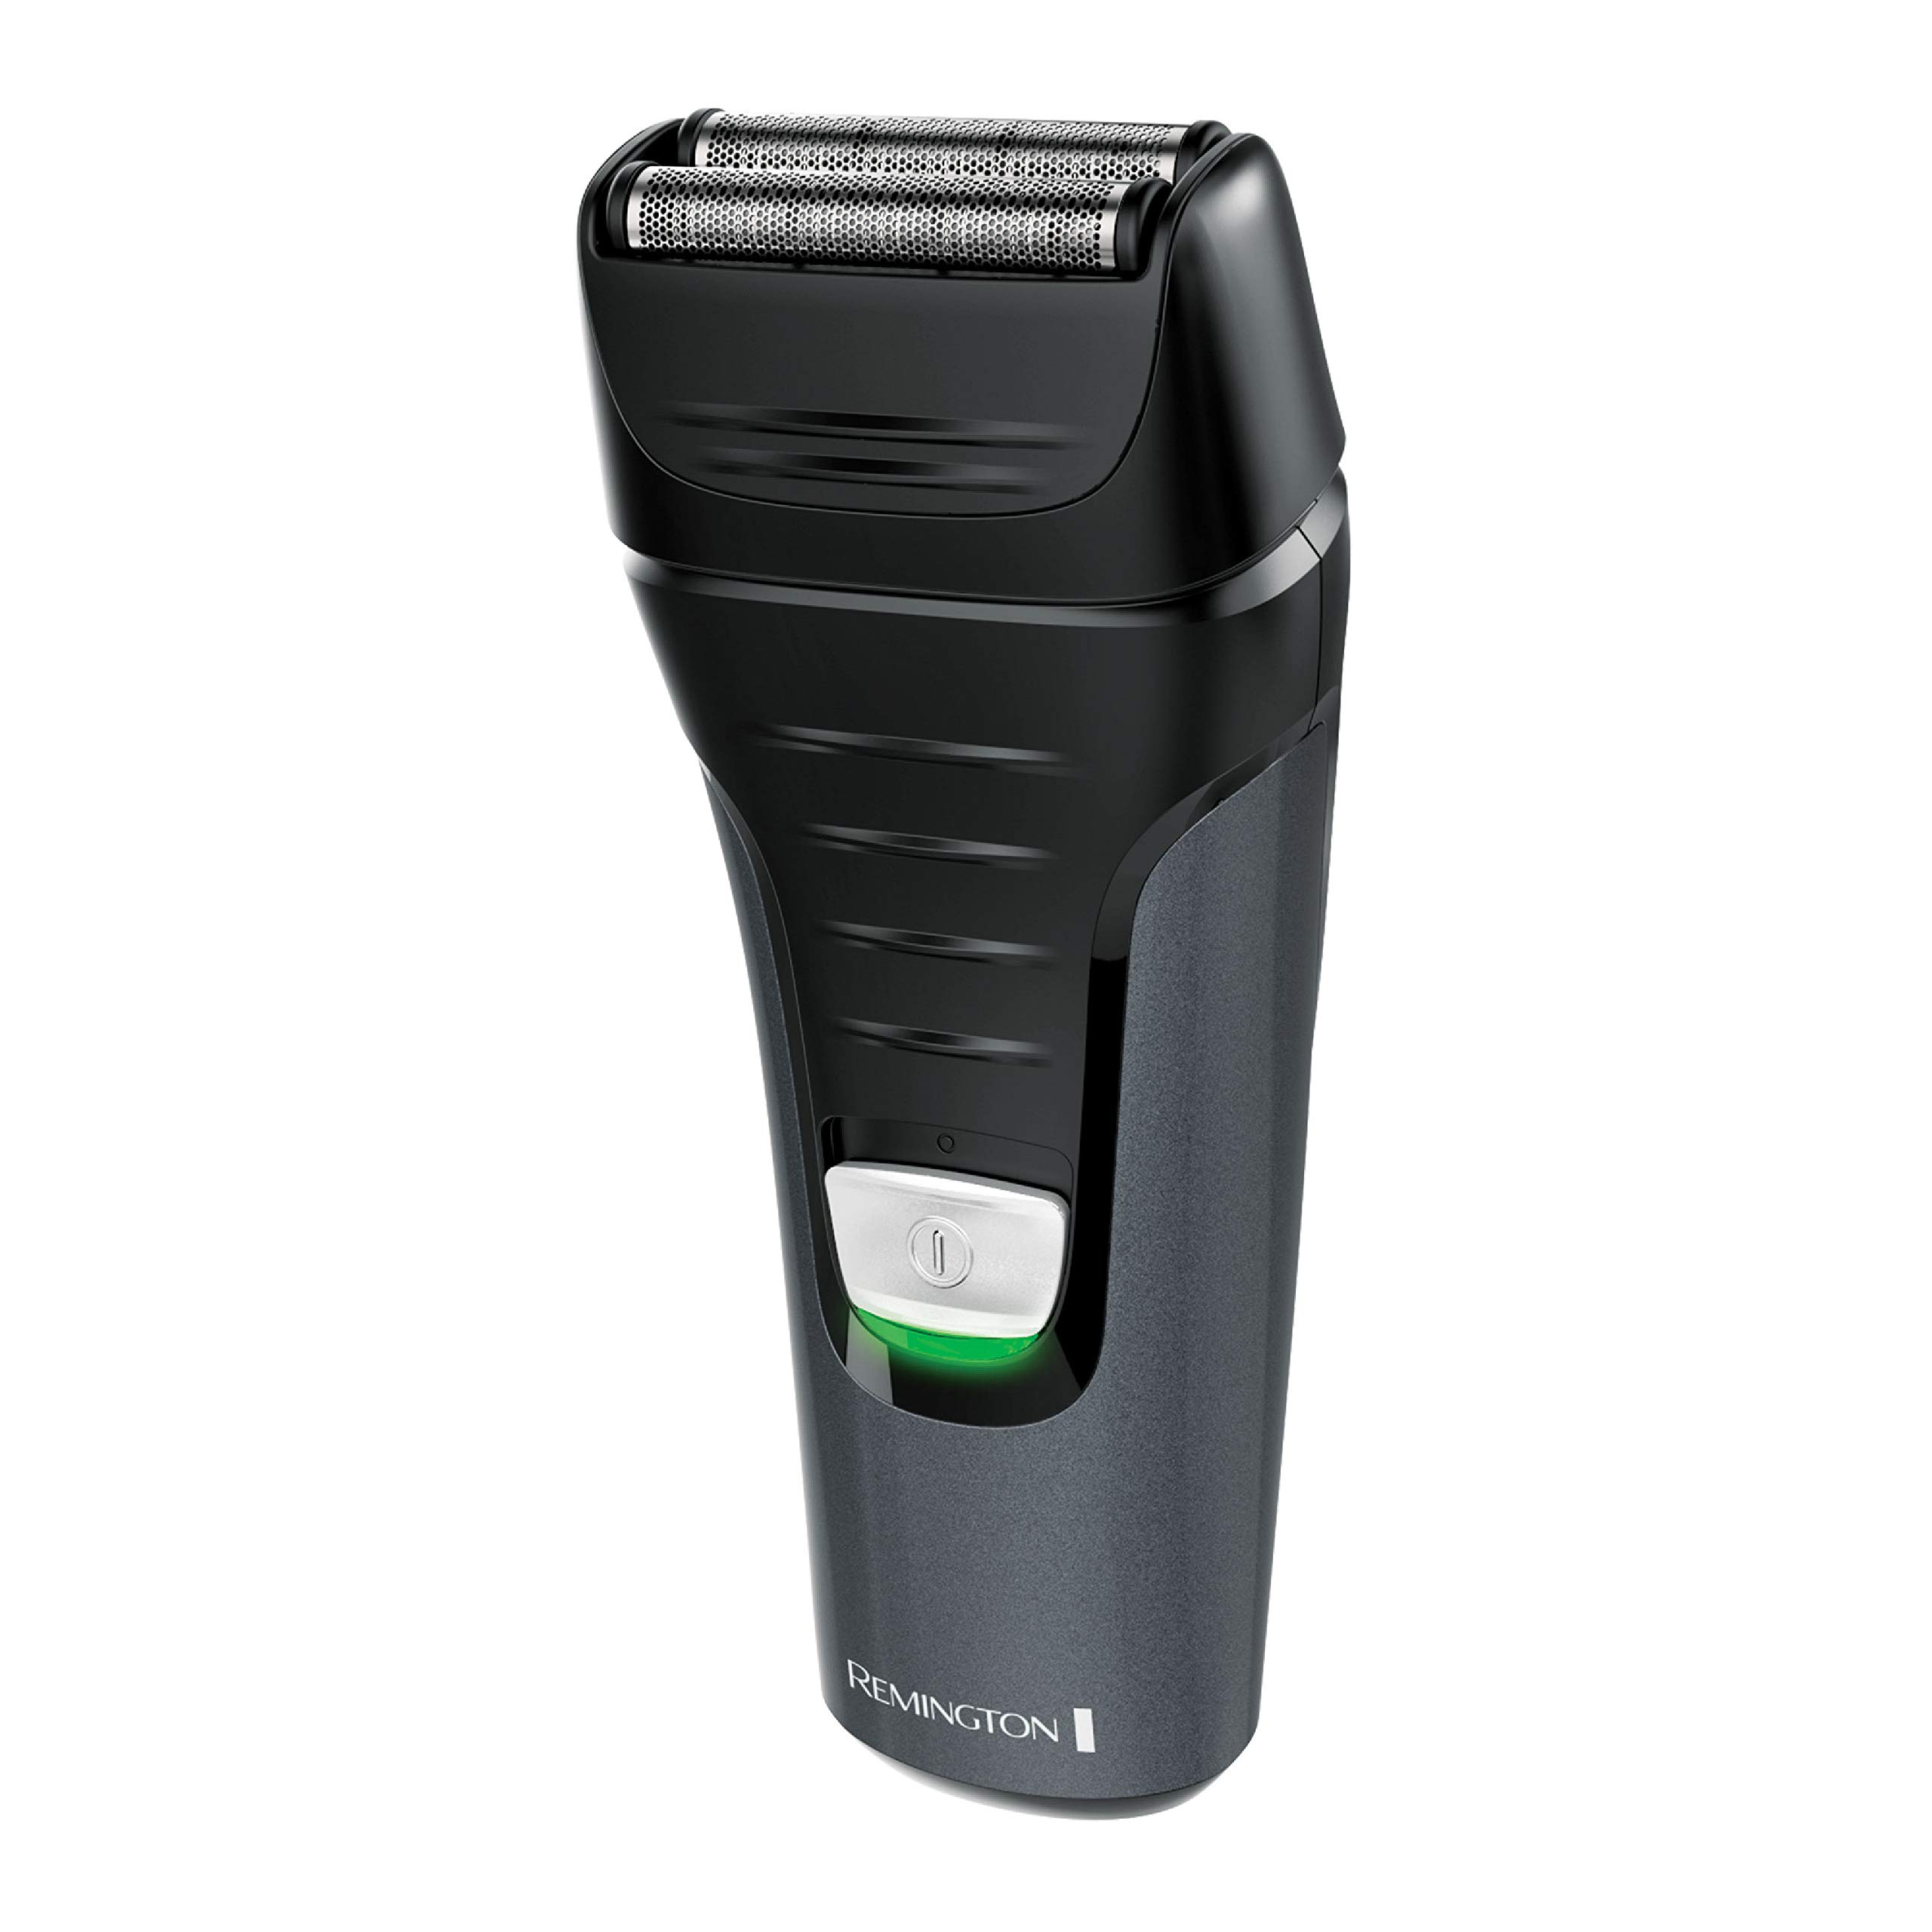 Remington PF7300 Comfort Shaver Electric